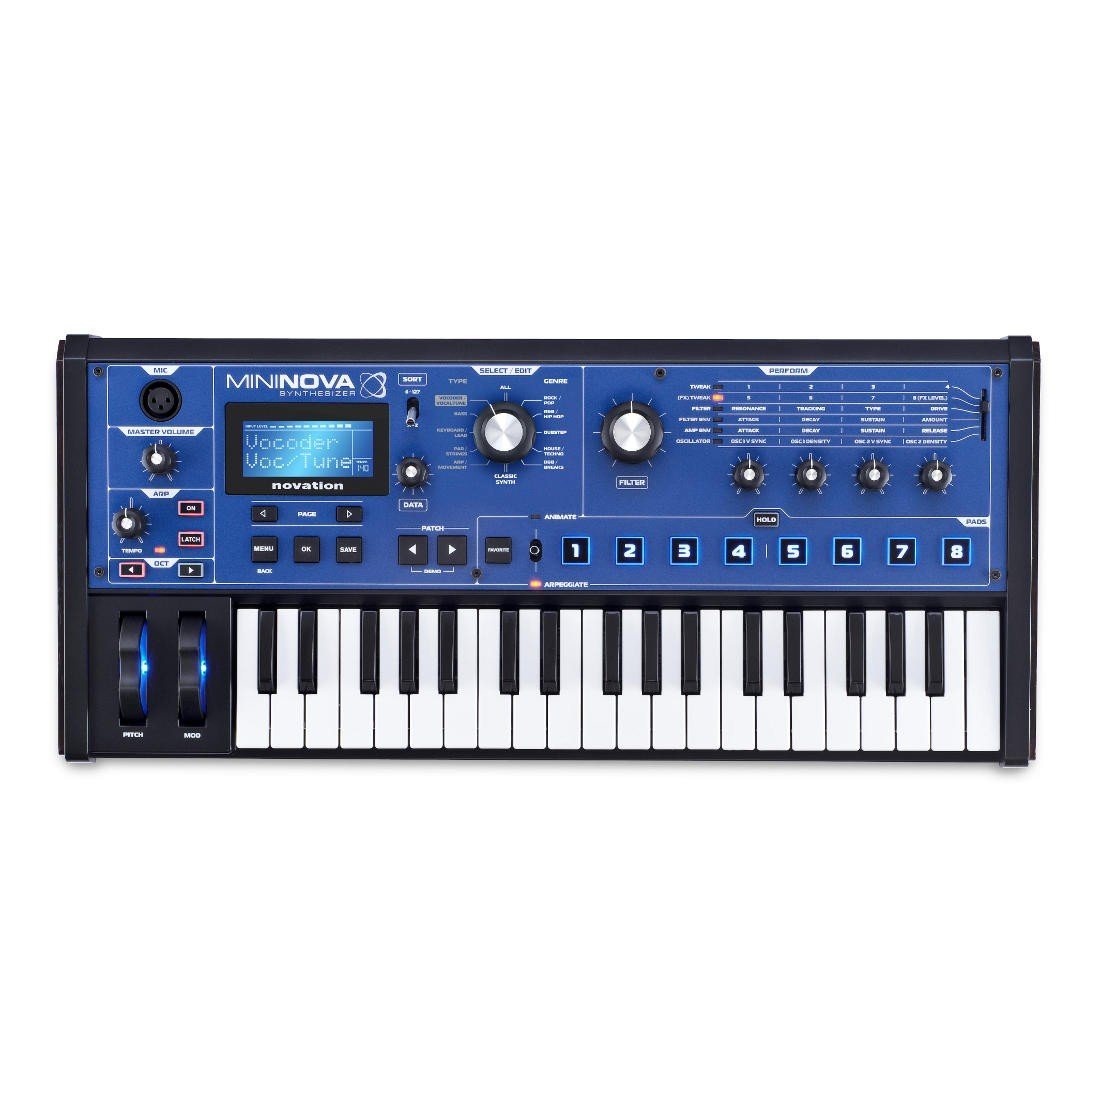 Novation MiniNova Analog Modeling Synthesizer by Novation